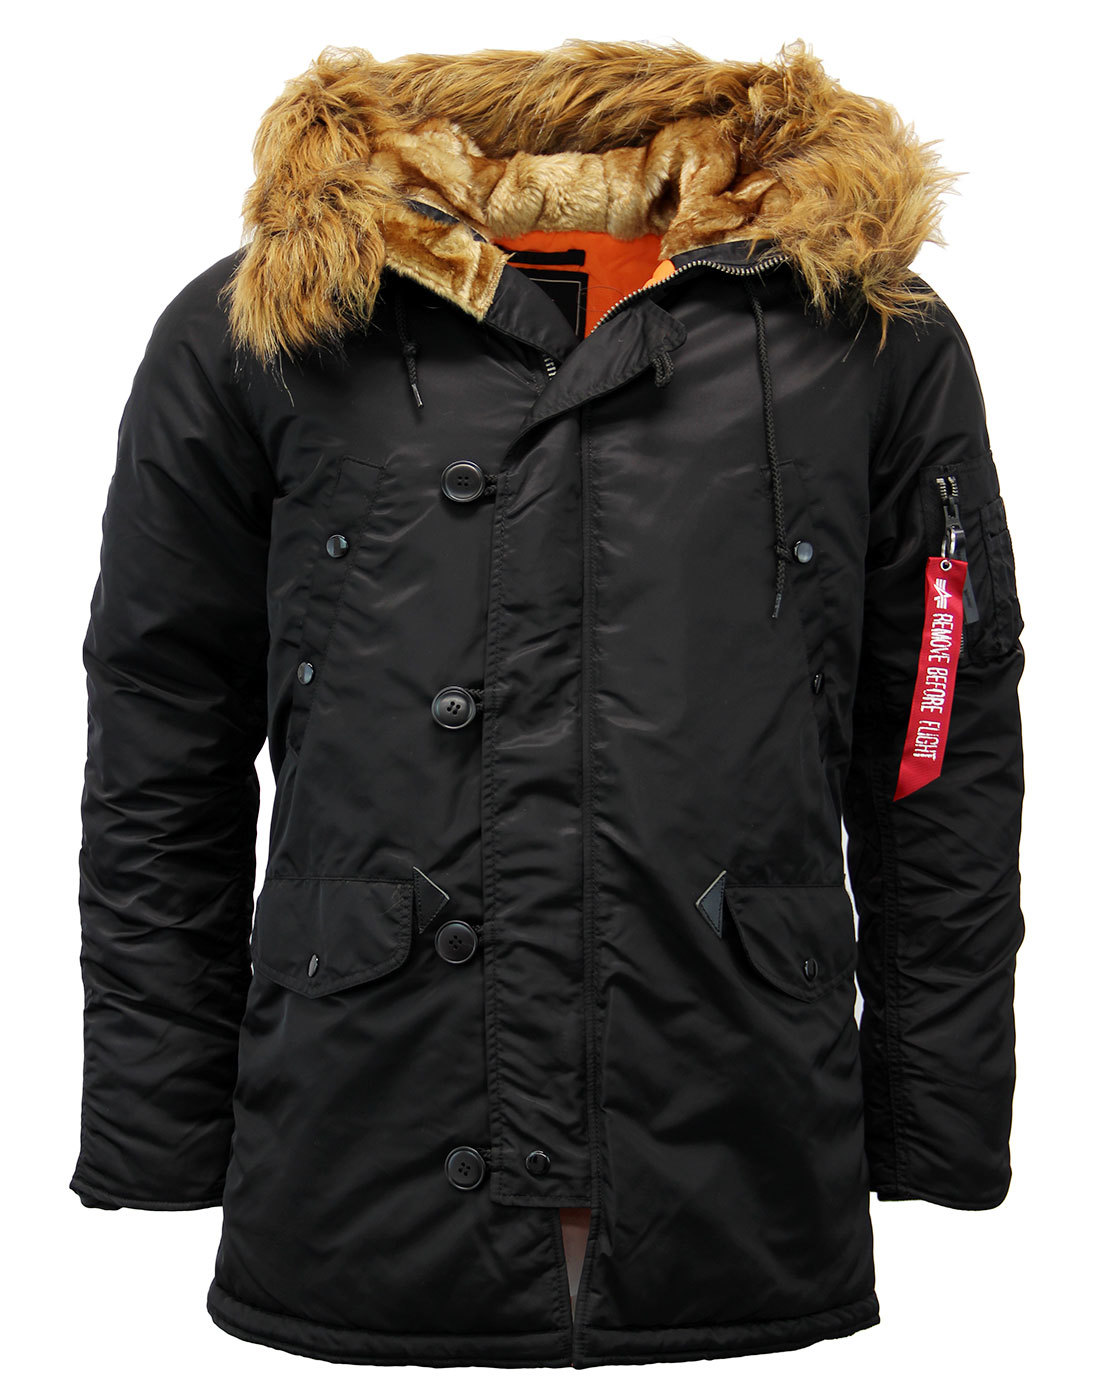 N3B Vintage Fit ALPHA INDUSTRIES Snorkel Parka (B)